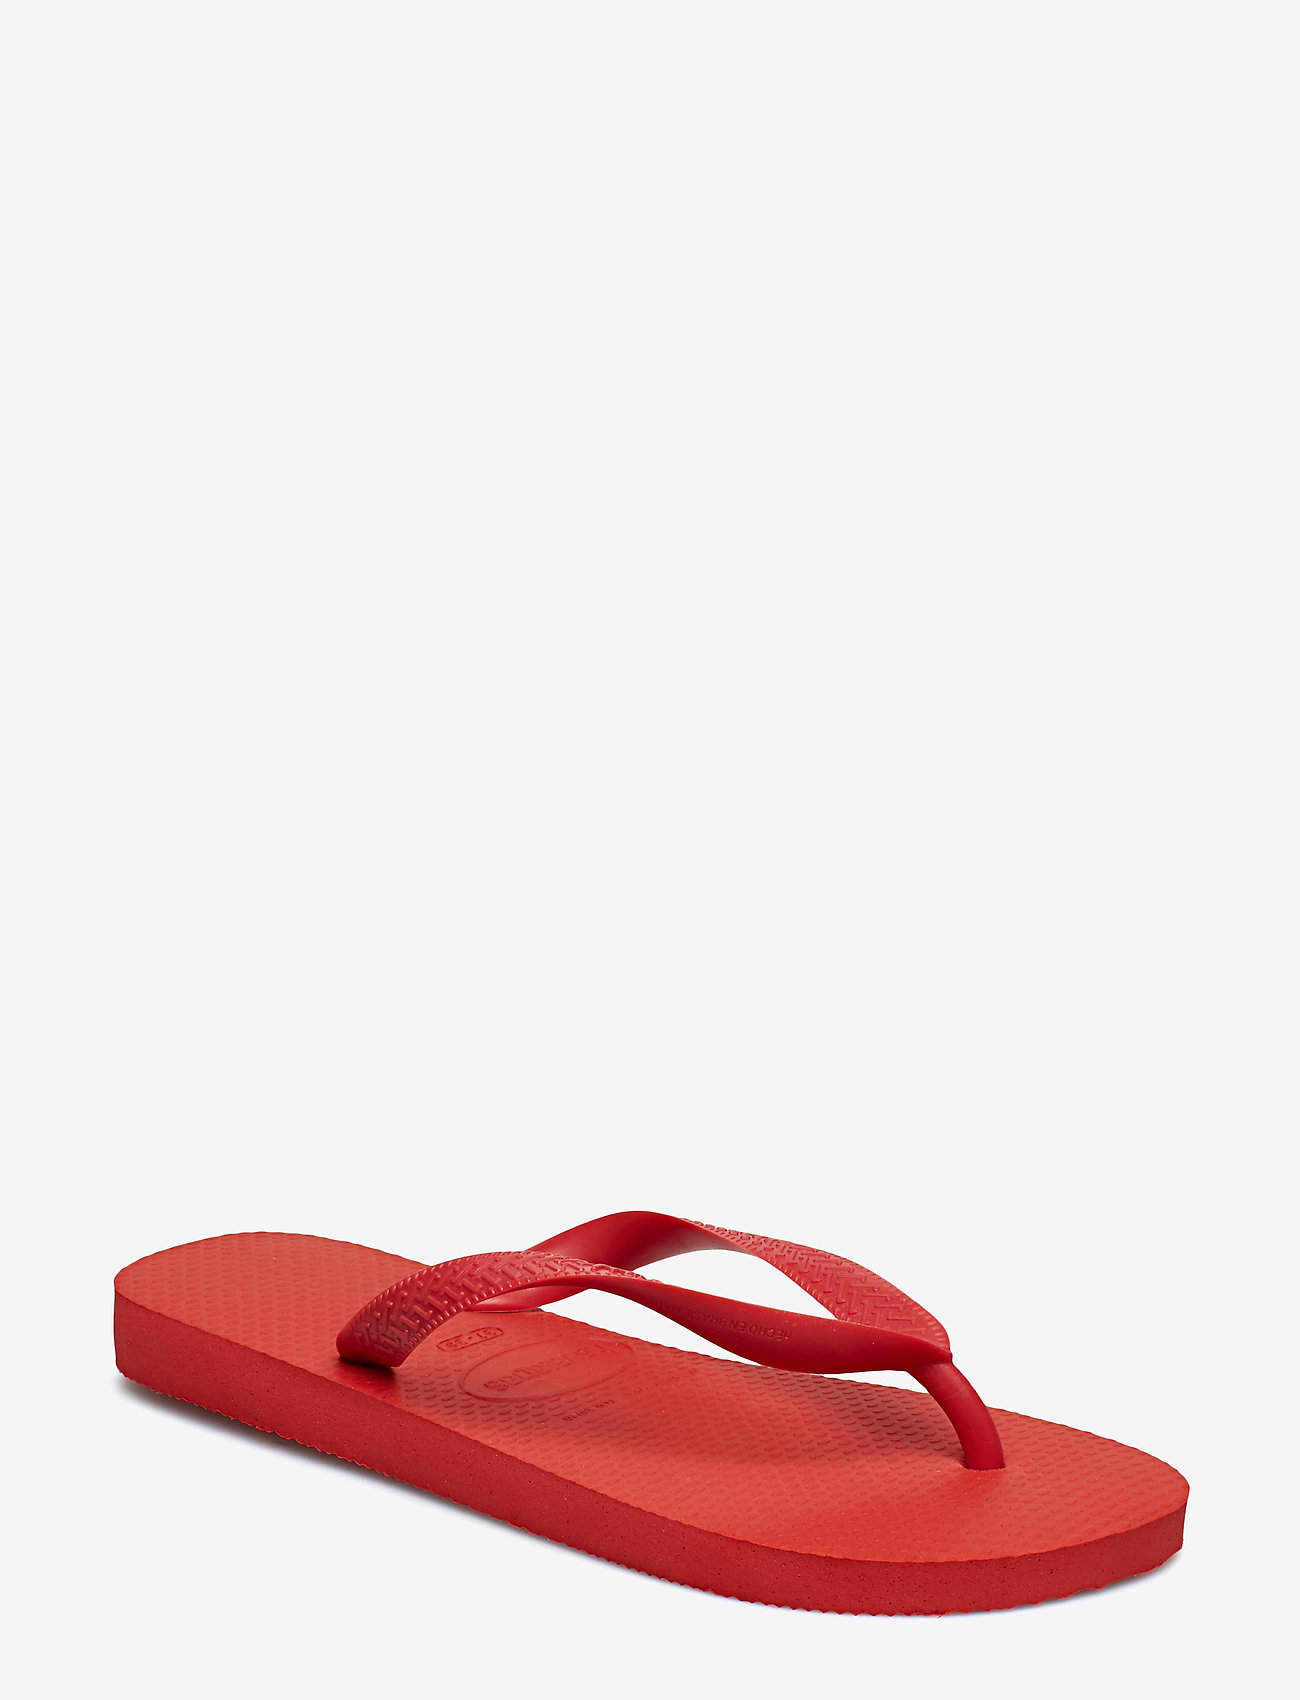 Havaianas - Top - teen slippers - ruby red 2090 - 0